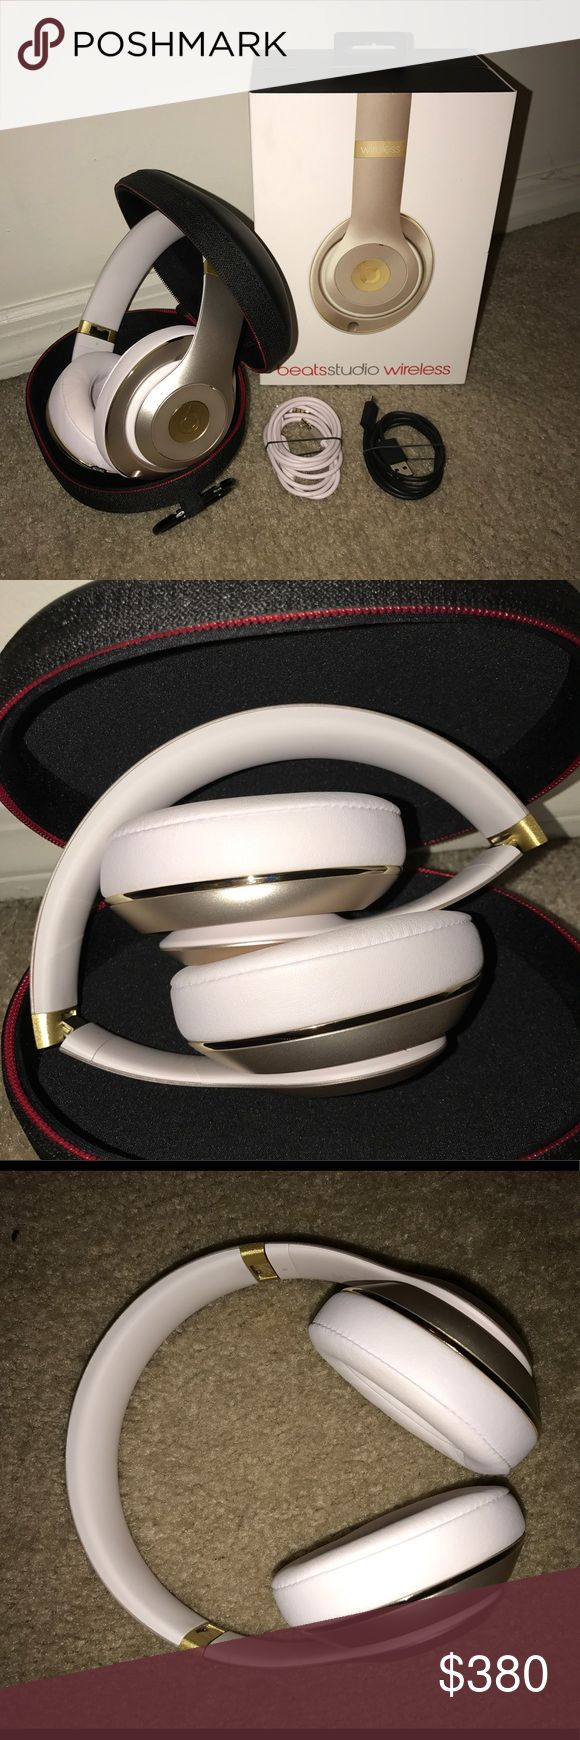 Beats Studio Wireless Bluetooth Headphones- Gold Over the ear beats headphones, charger and wire core included, hard shell case, instruction manual. These headphones have all-day charge, a flexible fit, and on-ear controls. ONLY WORN TWICE, very new. Beats Other